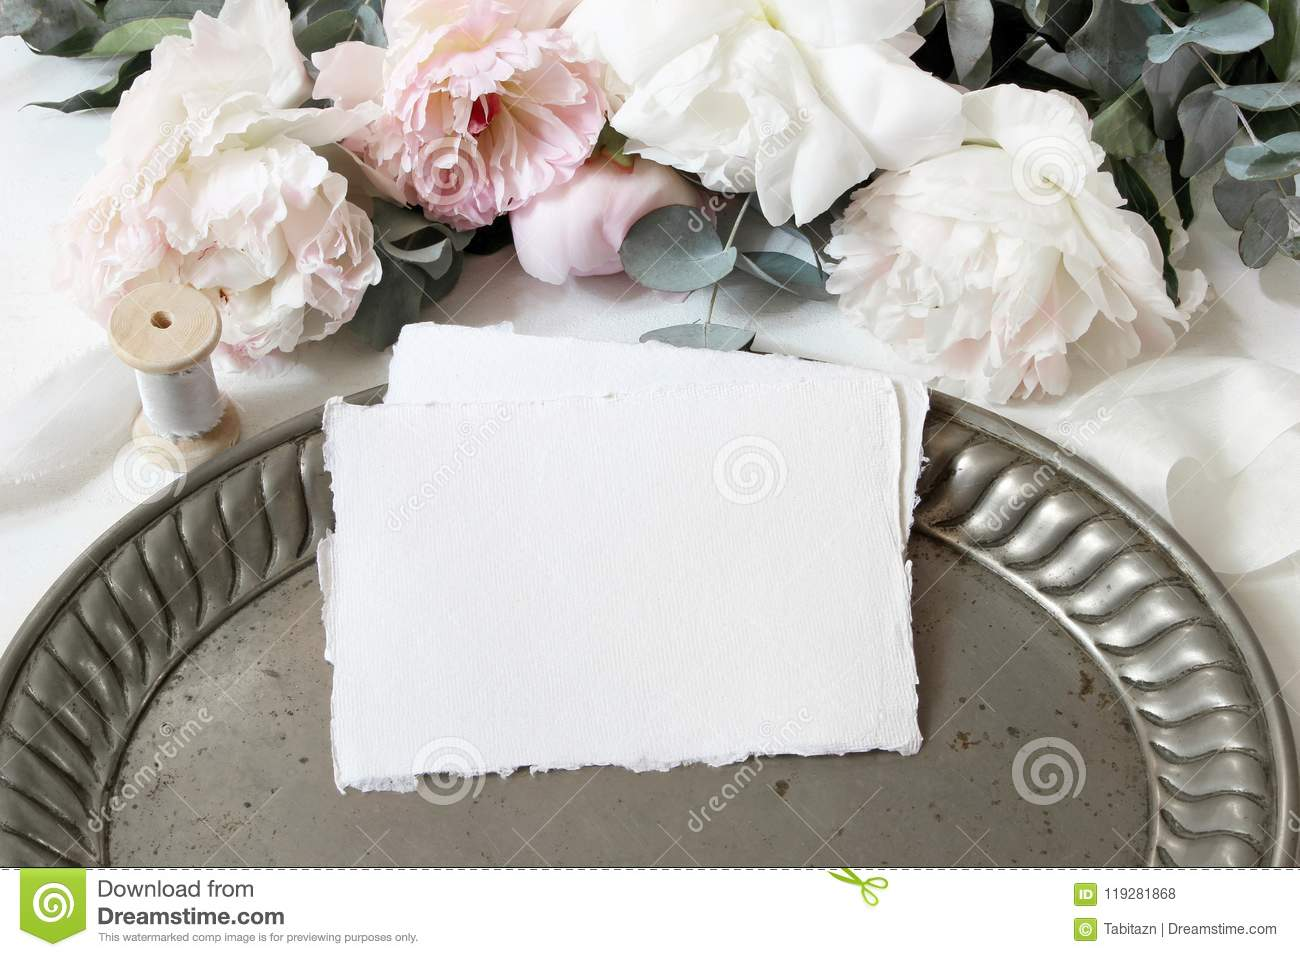 Feminine Wedding Or Birthday Table Composition With Floral Bouquet White And Pink Peonies Flowers Eucalyptus Old Stock Photo Image Of Composition Blog 119281868